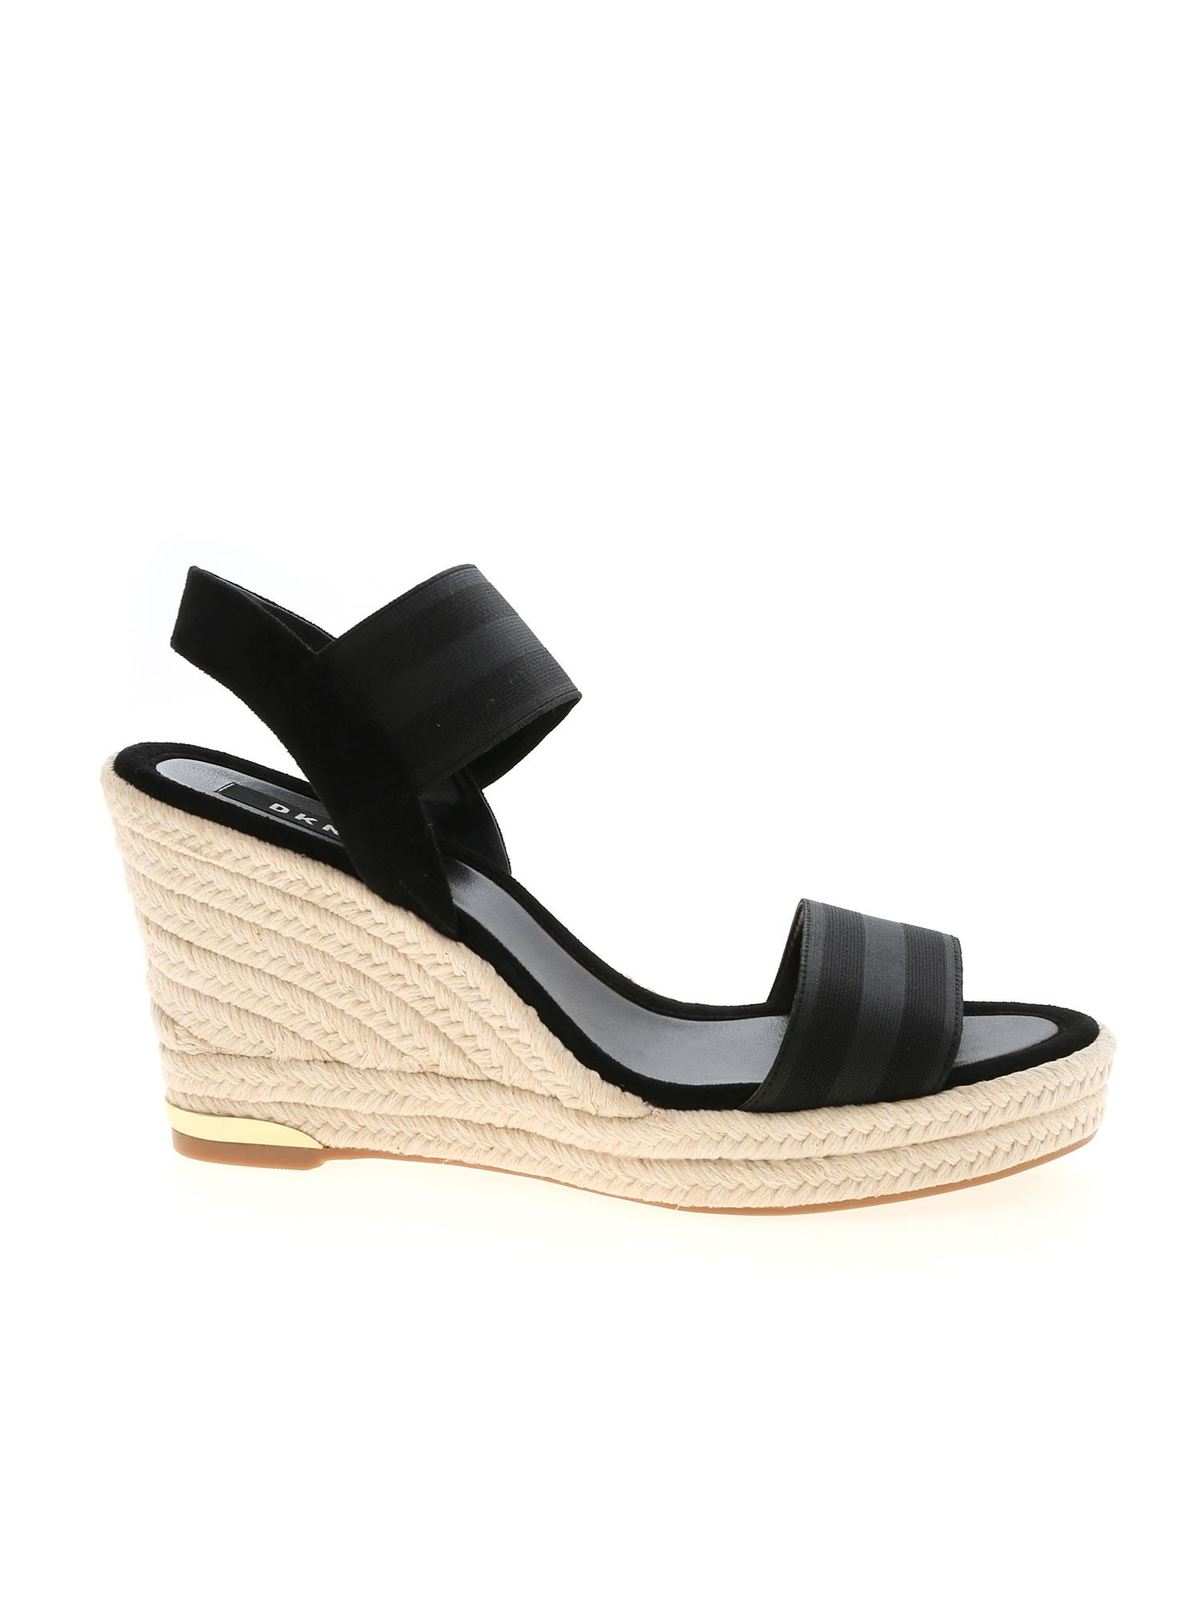 Dkny CAT WEDGE SANDALS